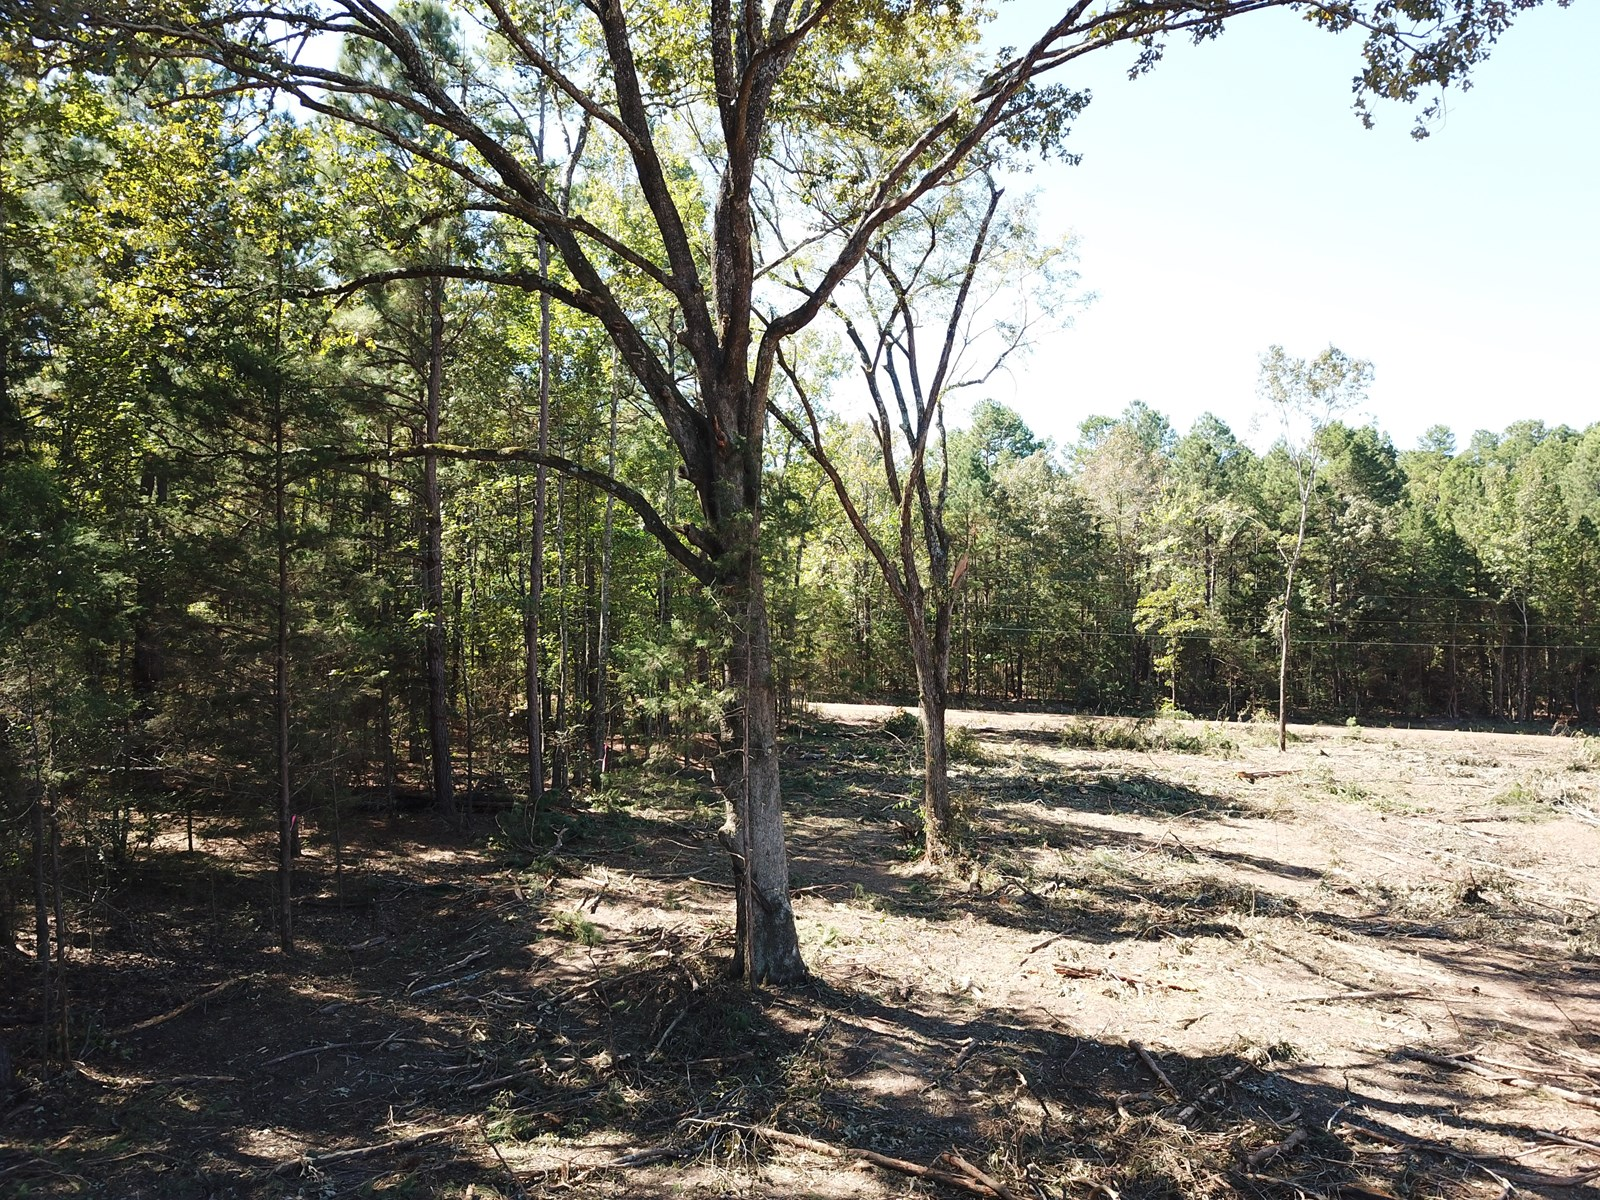 East Texas Rural home site/ land for sale